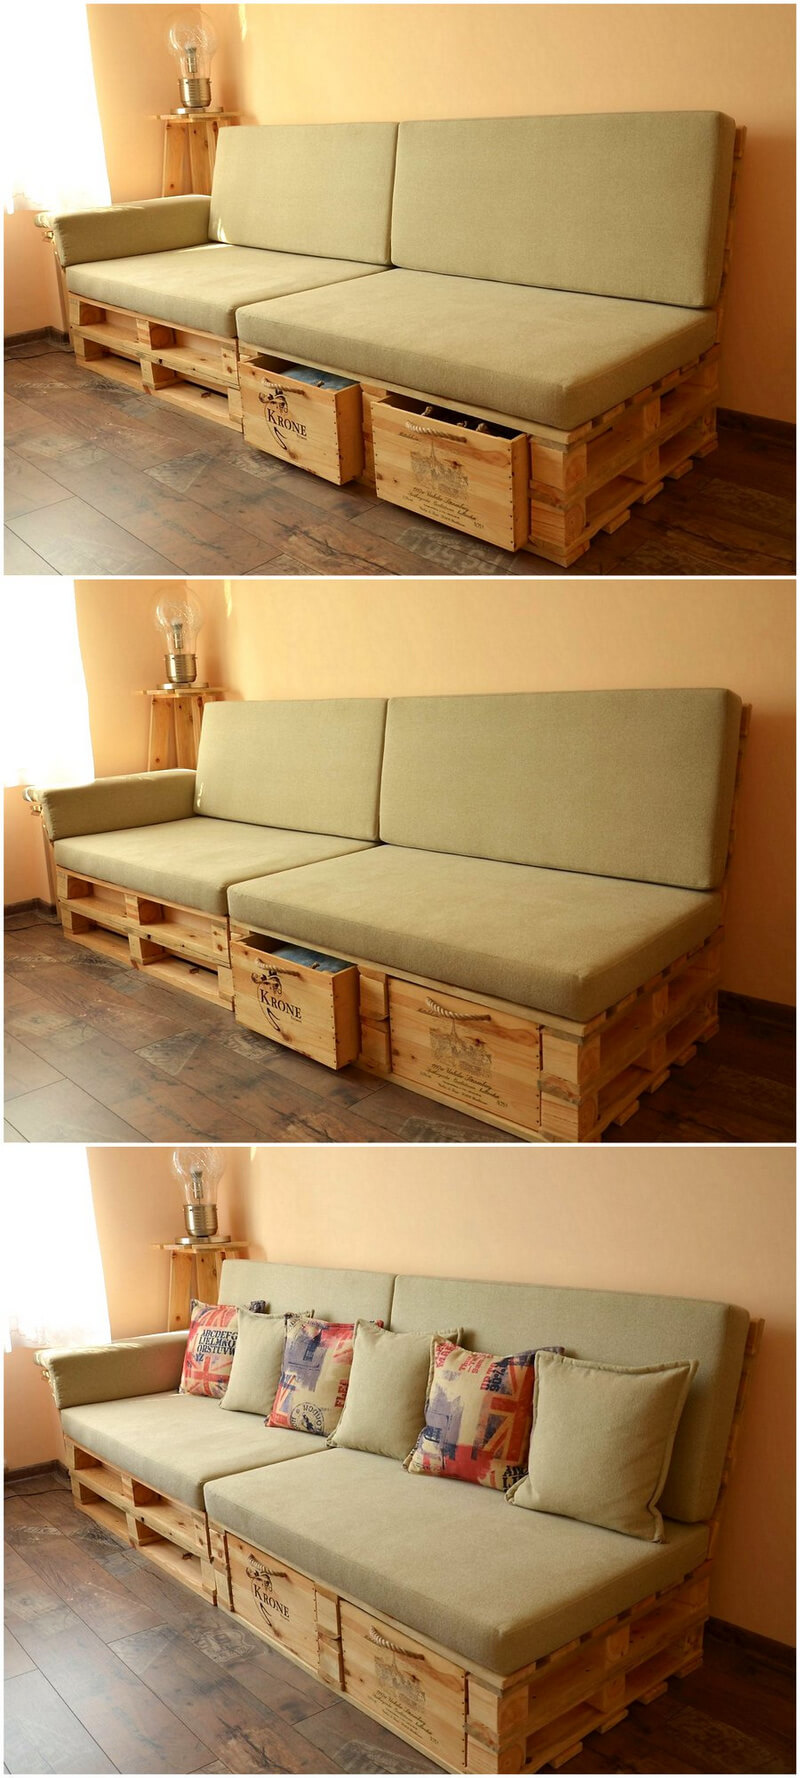 pallet wooden sofa with drawers